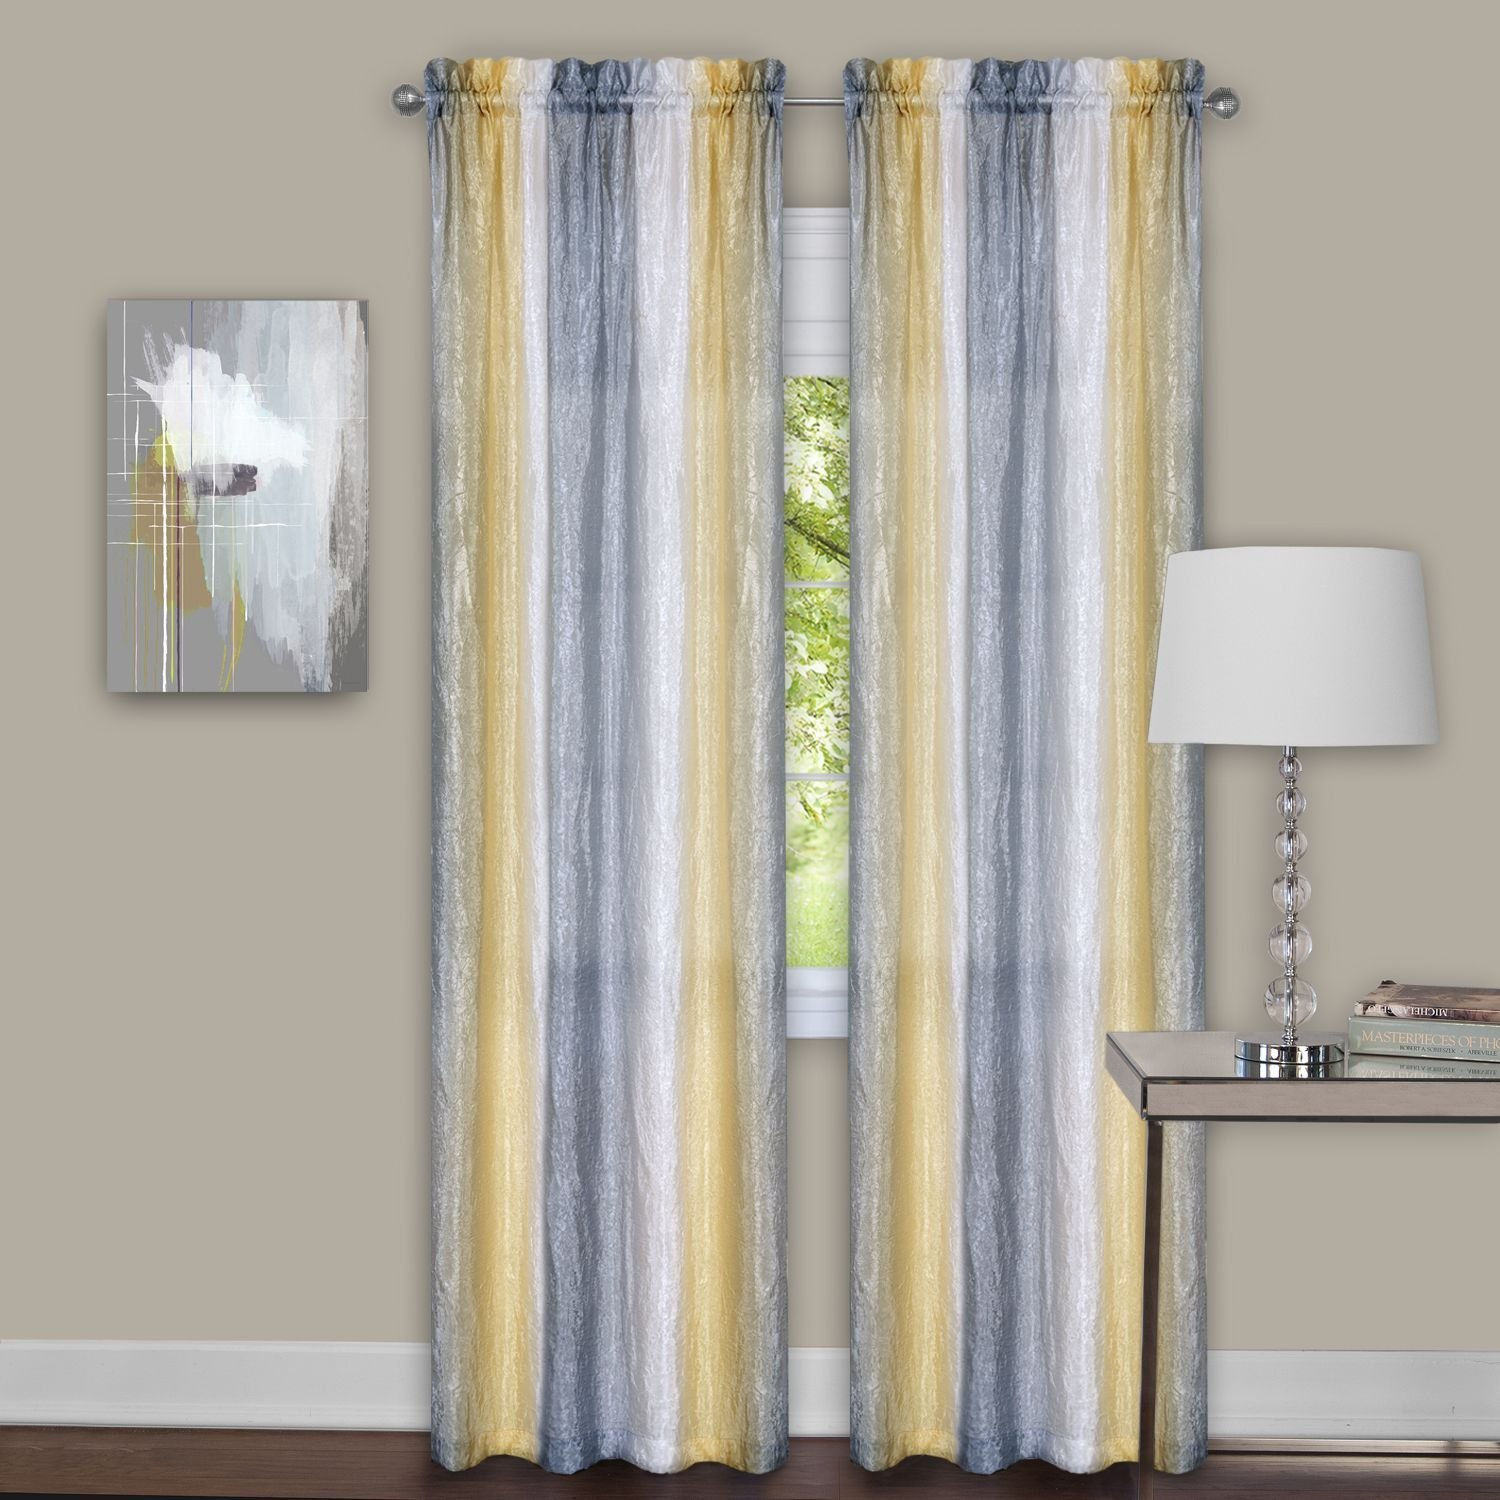 Achim Home Furnishings Sombre Pair Window Curtain Panel Grey/Yellow